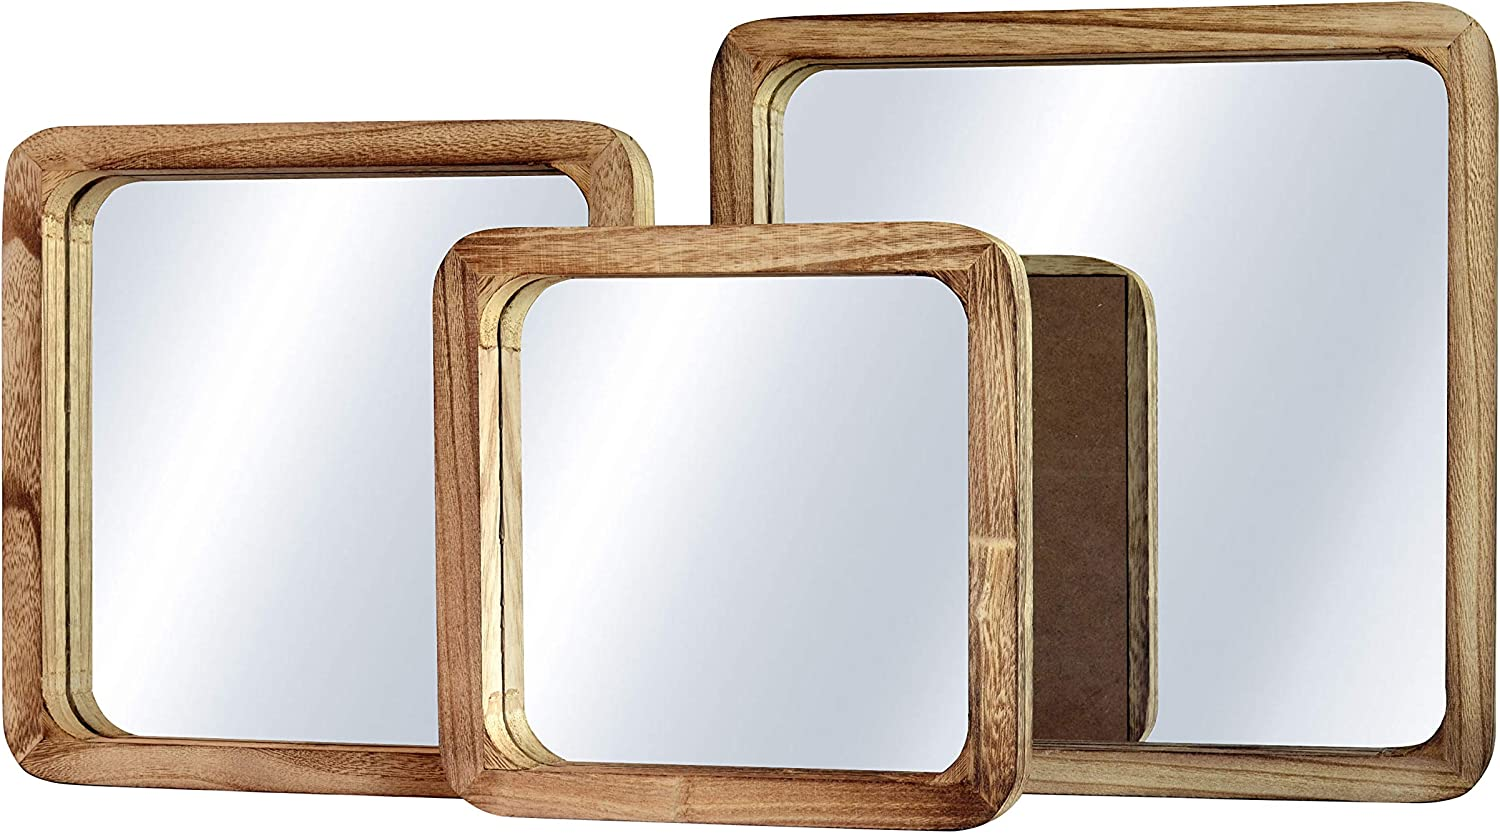 WHW Whole House Worlds Rustic Boho Chic Square Mirror Trio, Set of 3, 9.75, 11.75, and 13.75 Inches Square, Solid Sustainable Wood Frame, Glass, Saw Tooth Hangers on Backs